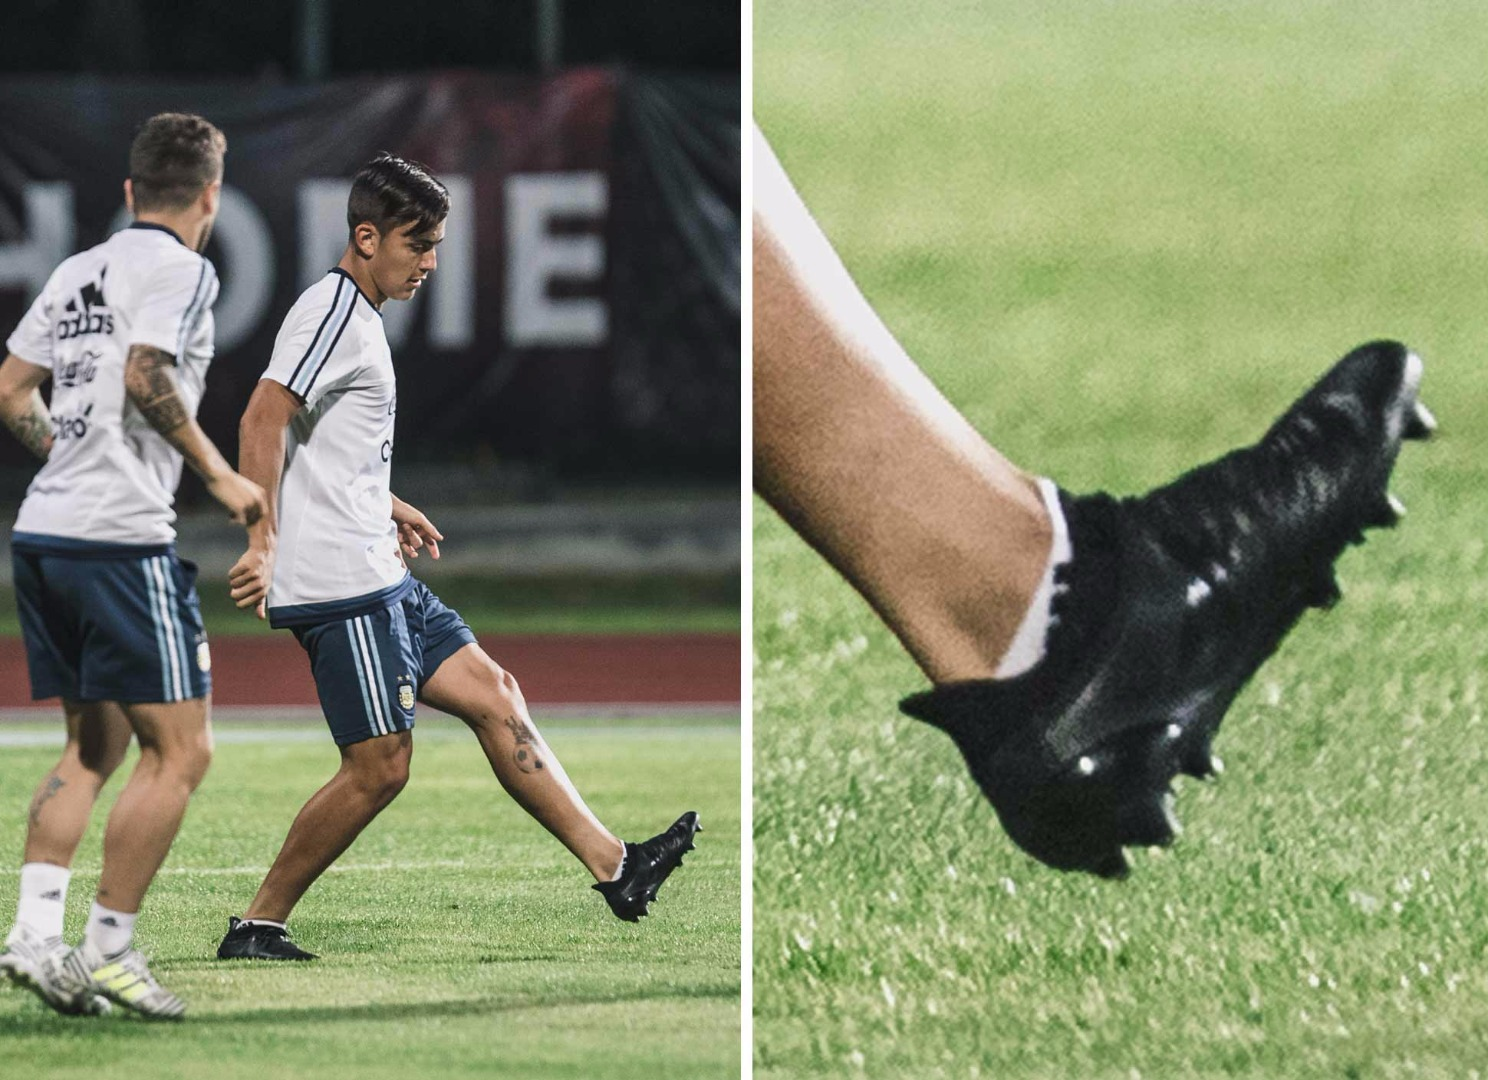 470668d69 Paulo Dybala Close to Joining adidas - SoccerBible.